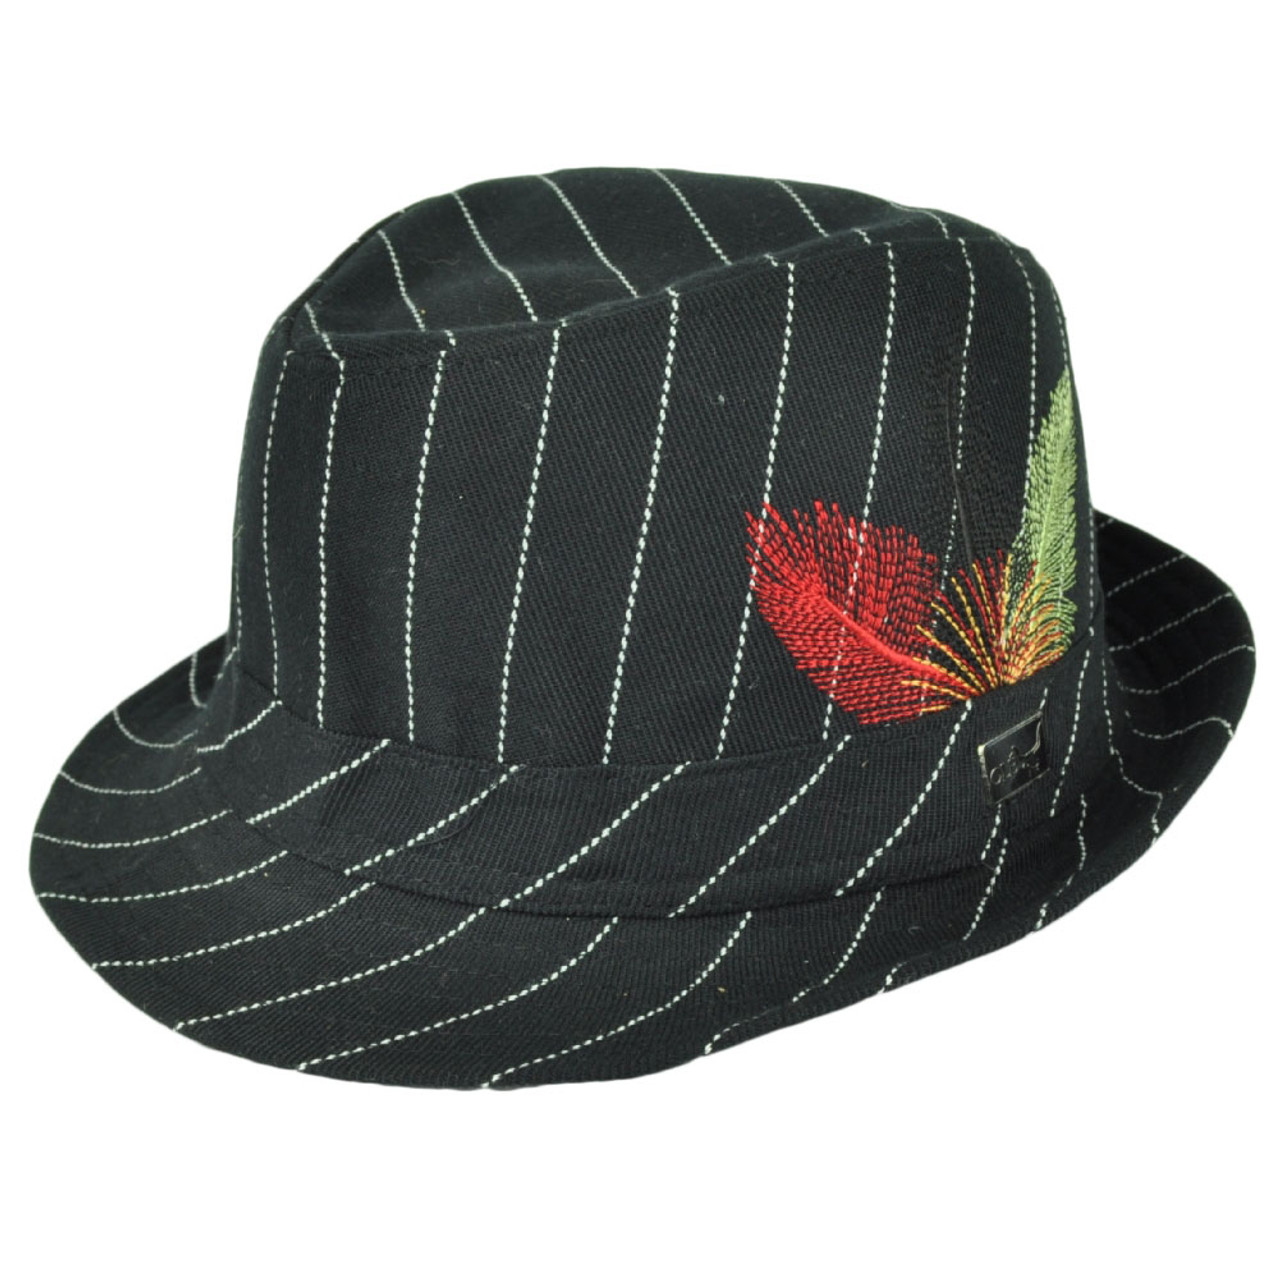 2b83ace137 Fedora Black White Pin Stripes Ole Feather One Size Fits Most Trilby  Gangster Hat